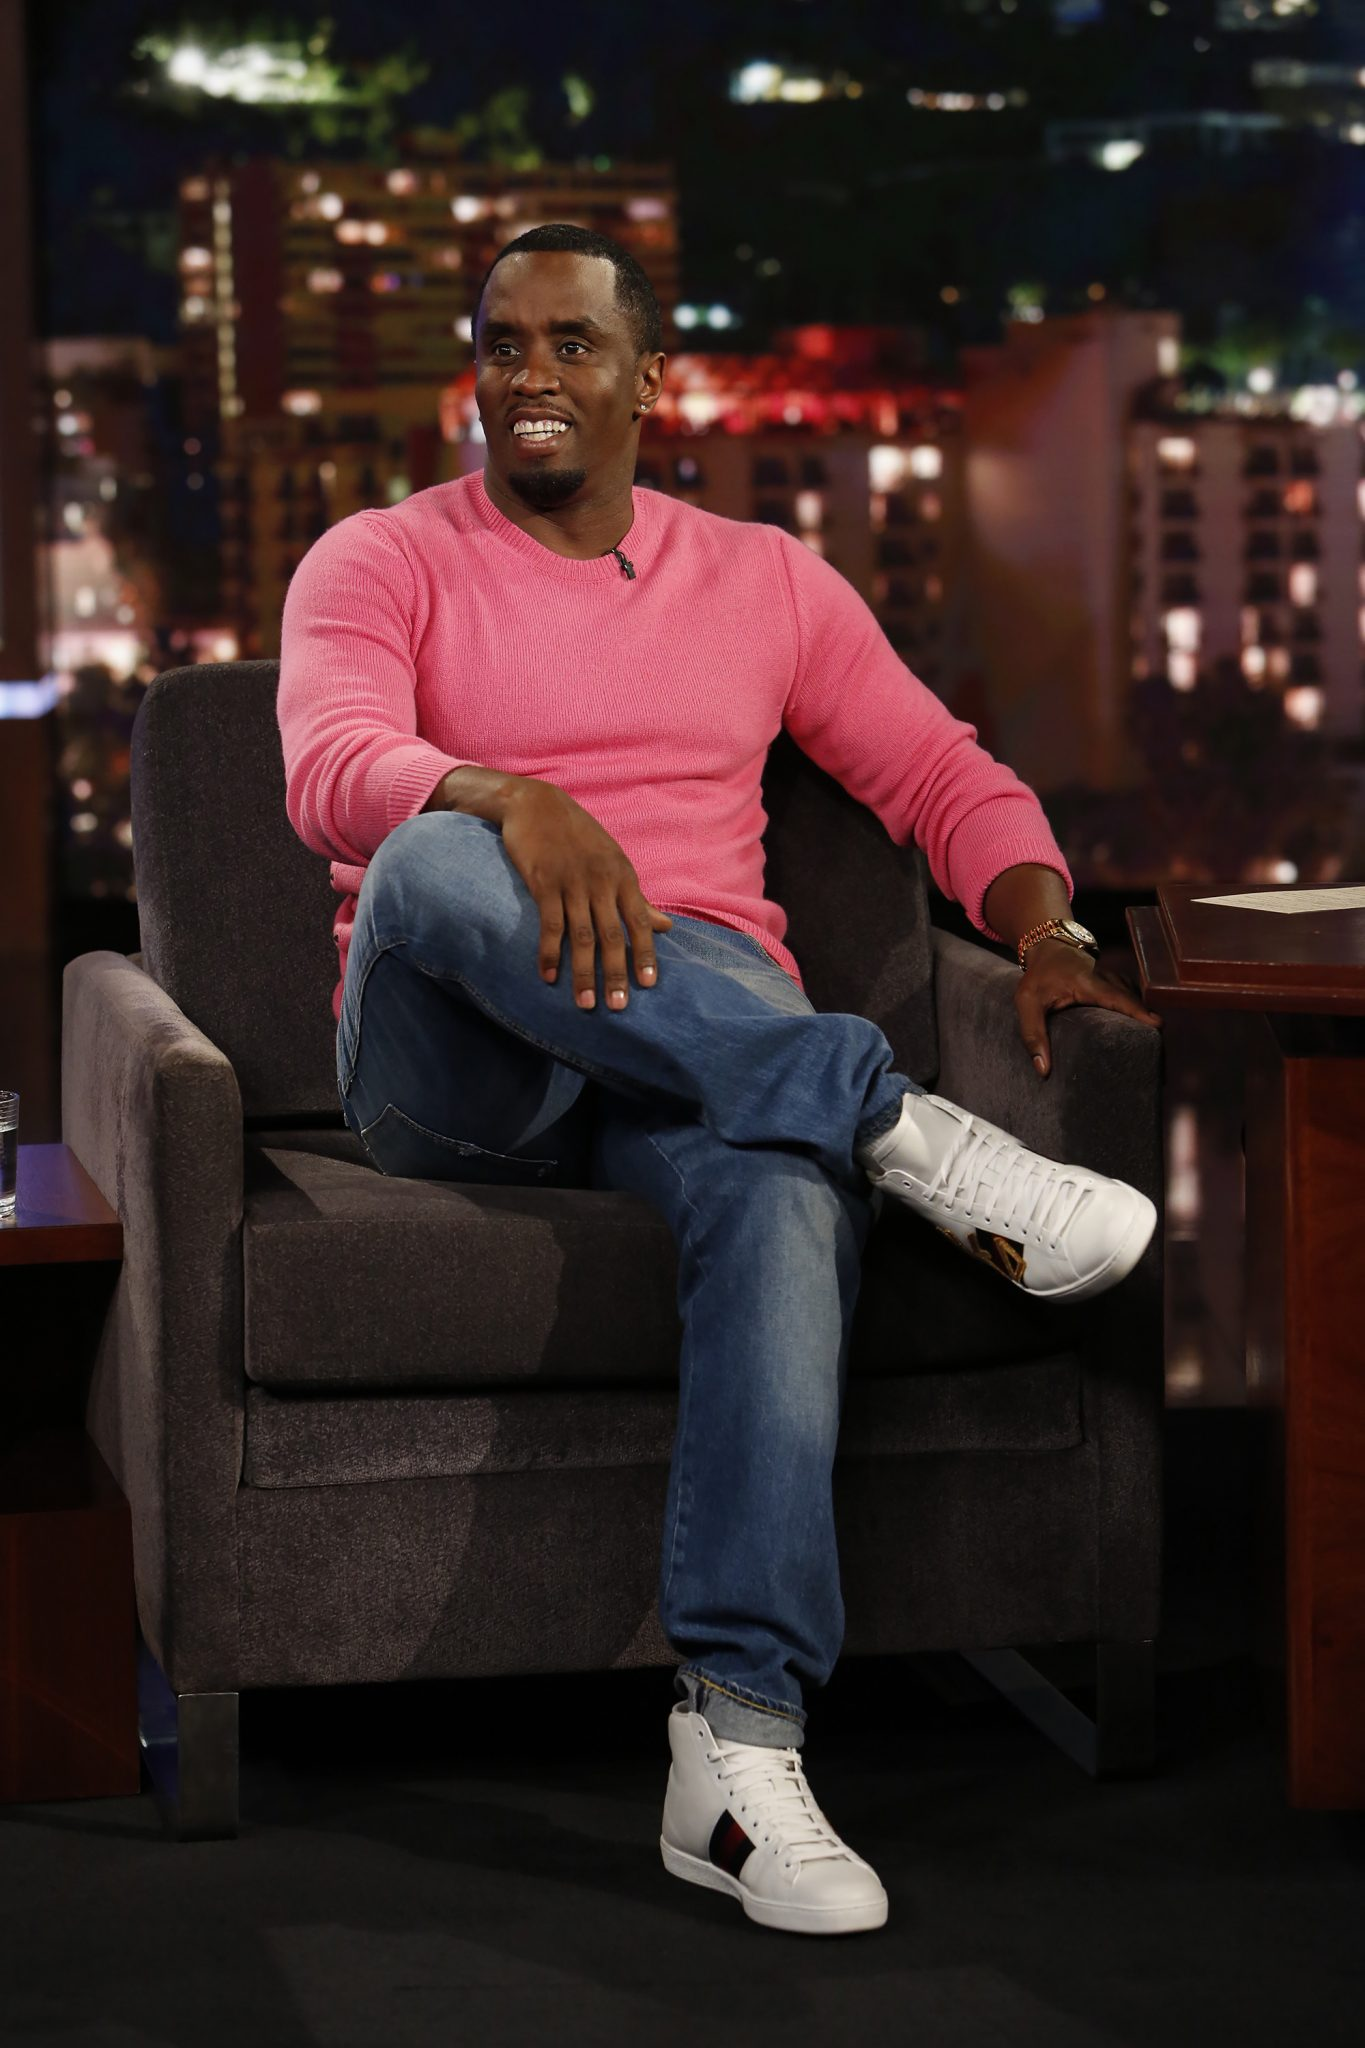 In Case You Missed It: Sean Diddy Combs On Jimmy Kimmel Live